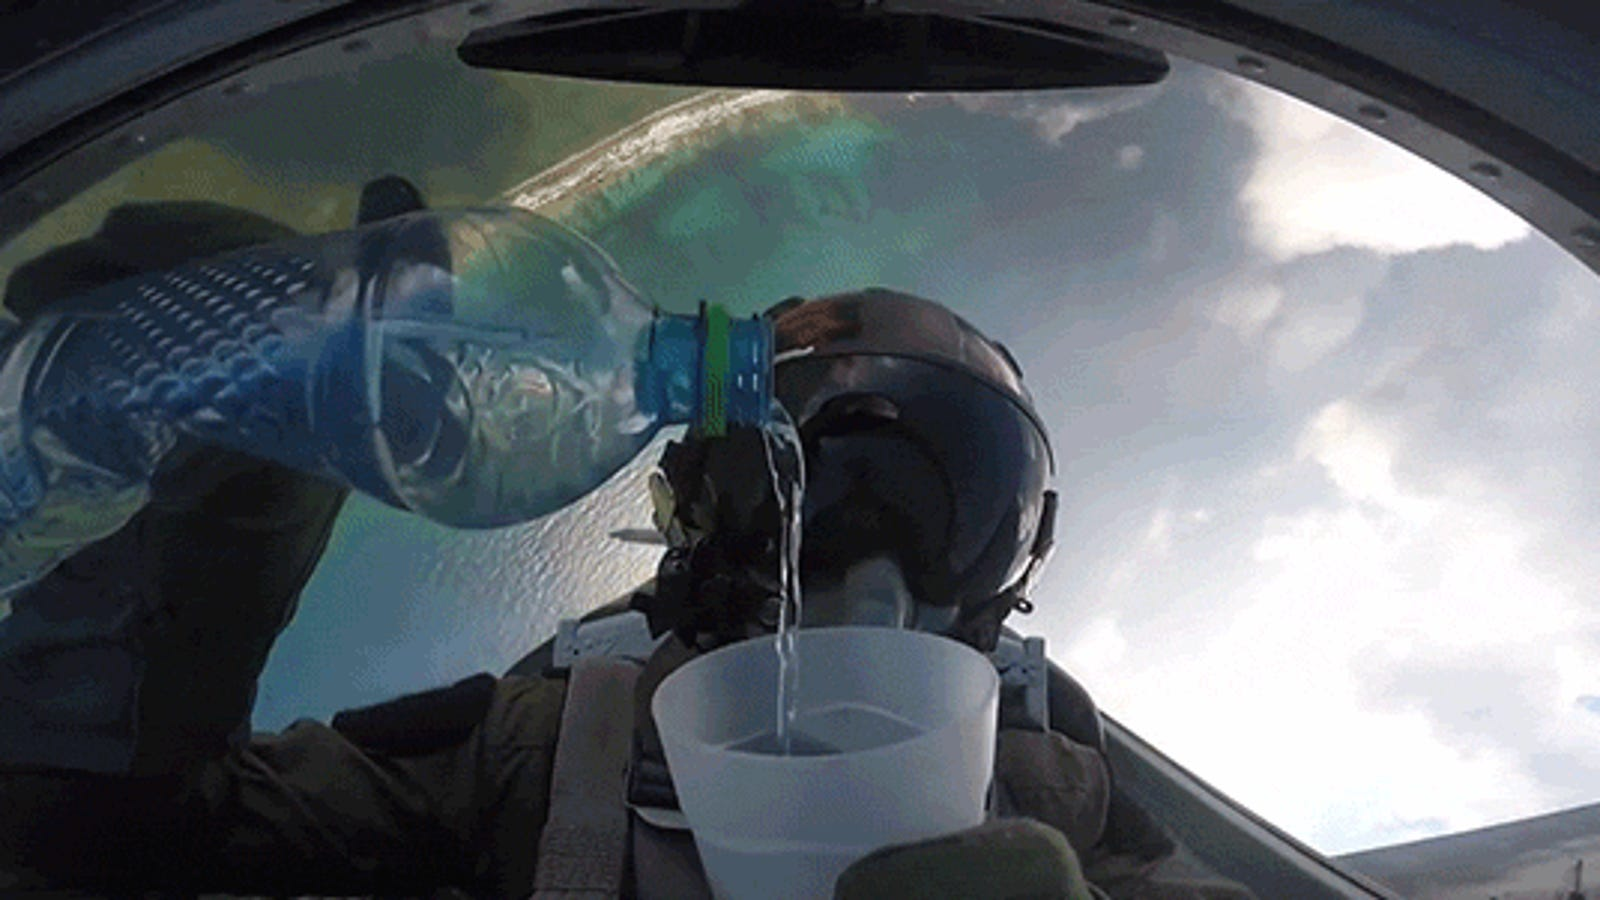 Cool View of a Pilot Pouring Water Upside Down While Doing a Barrel Roll in a Fighter Jet